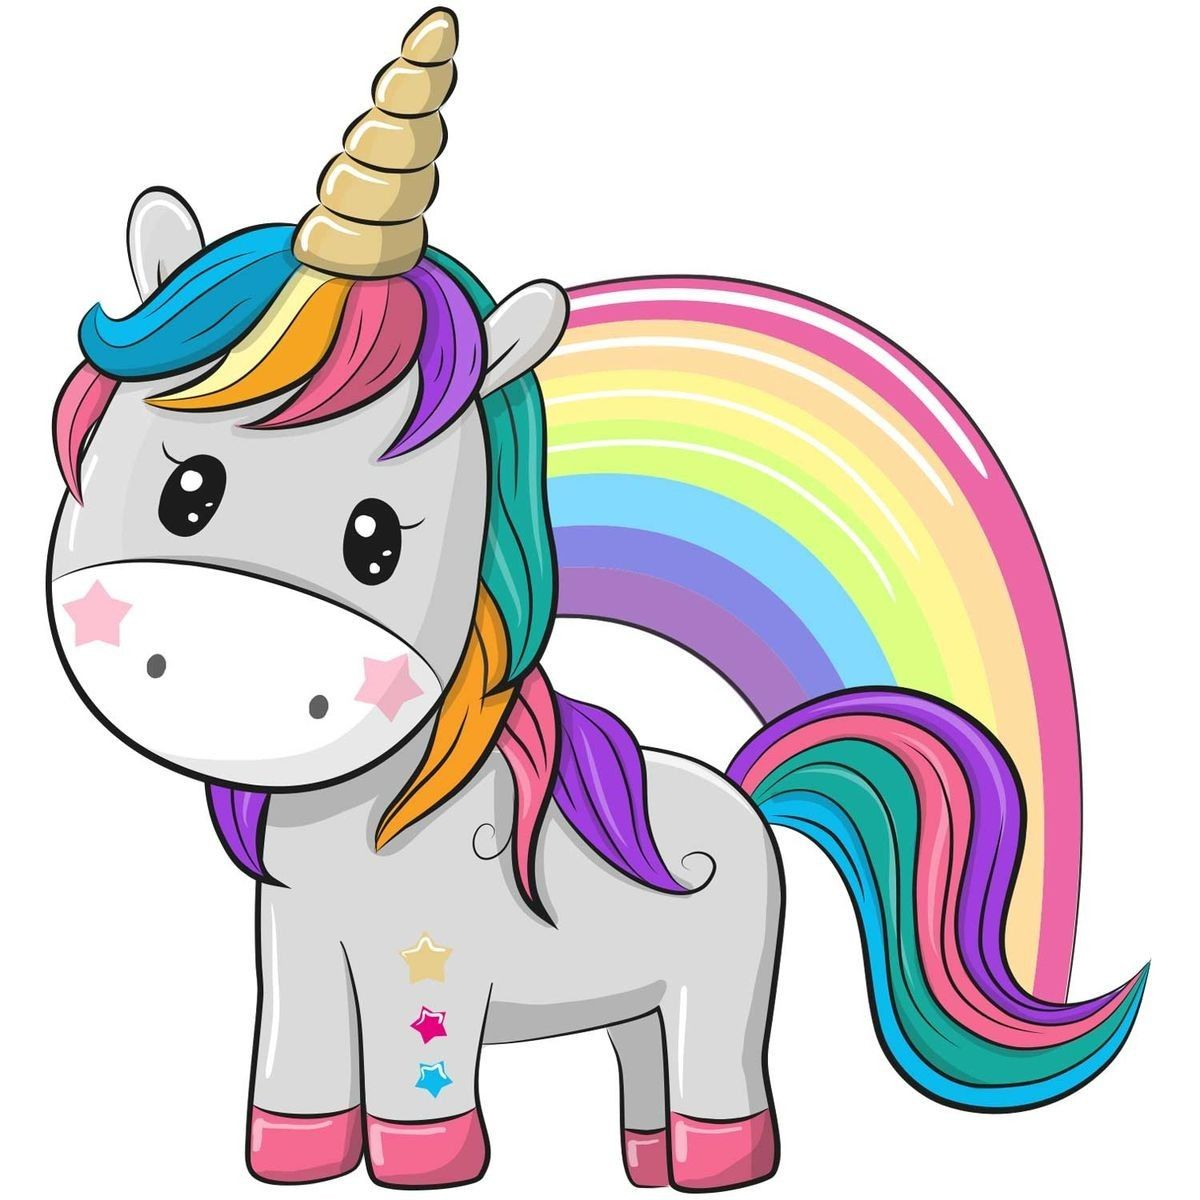 Cute Magical Unicorn And Rainbow Vector Design Isolated On White